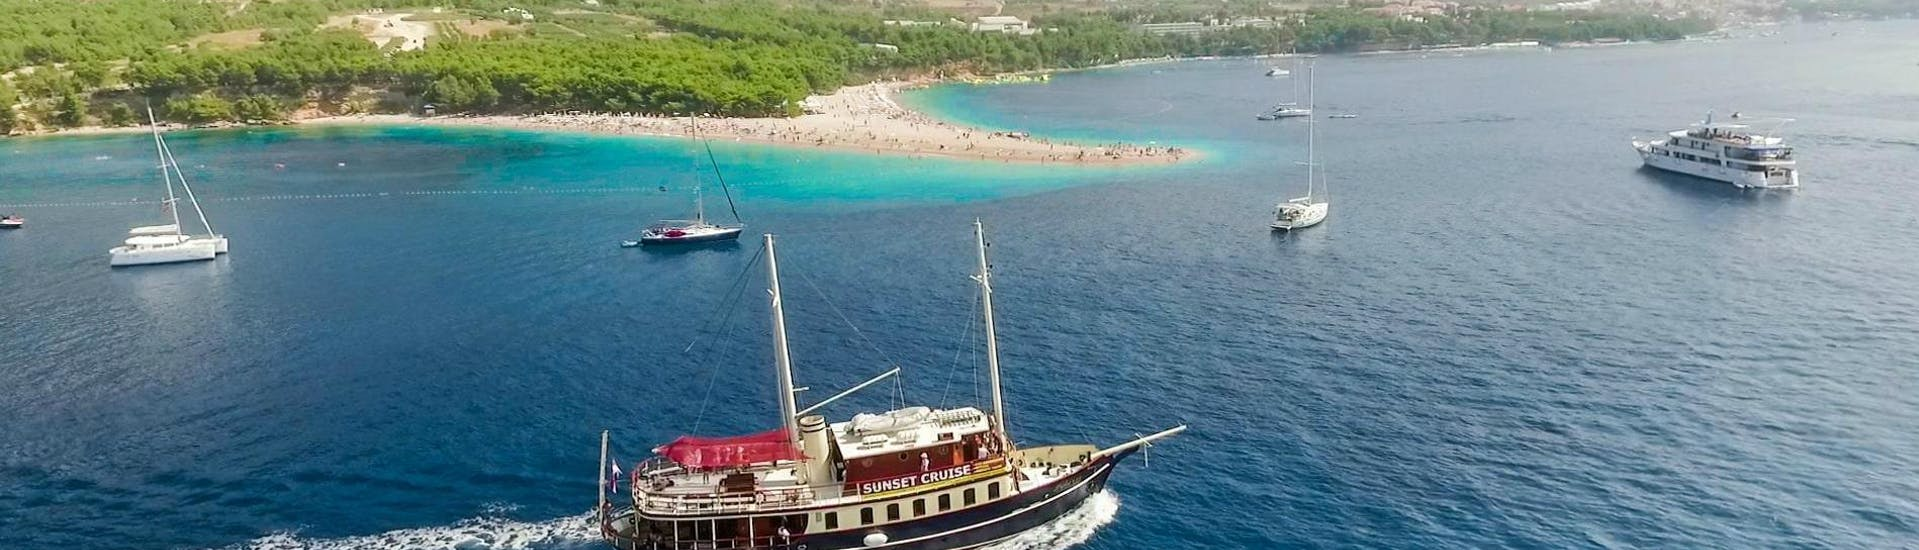 boat-tour-with-lunch-swimming-to-golden-horn-beach-bol-polaris-split-hero